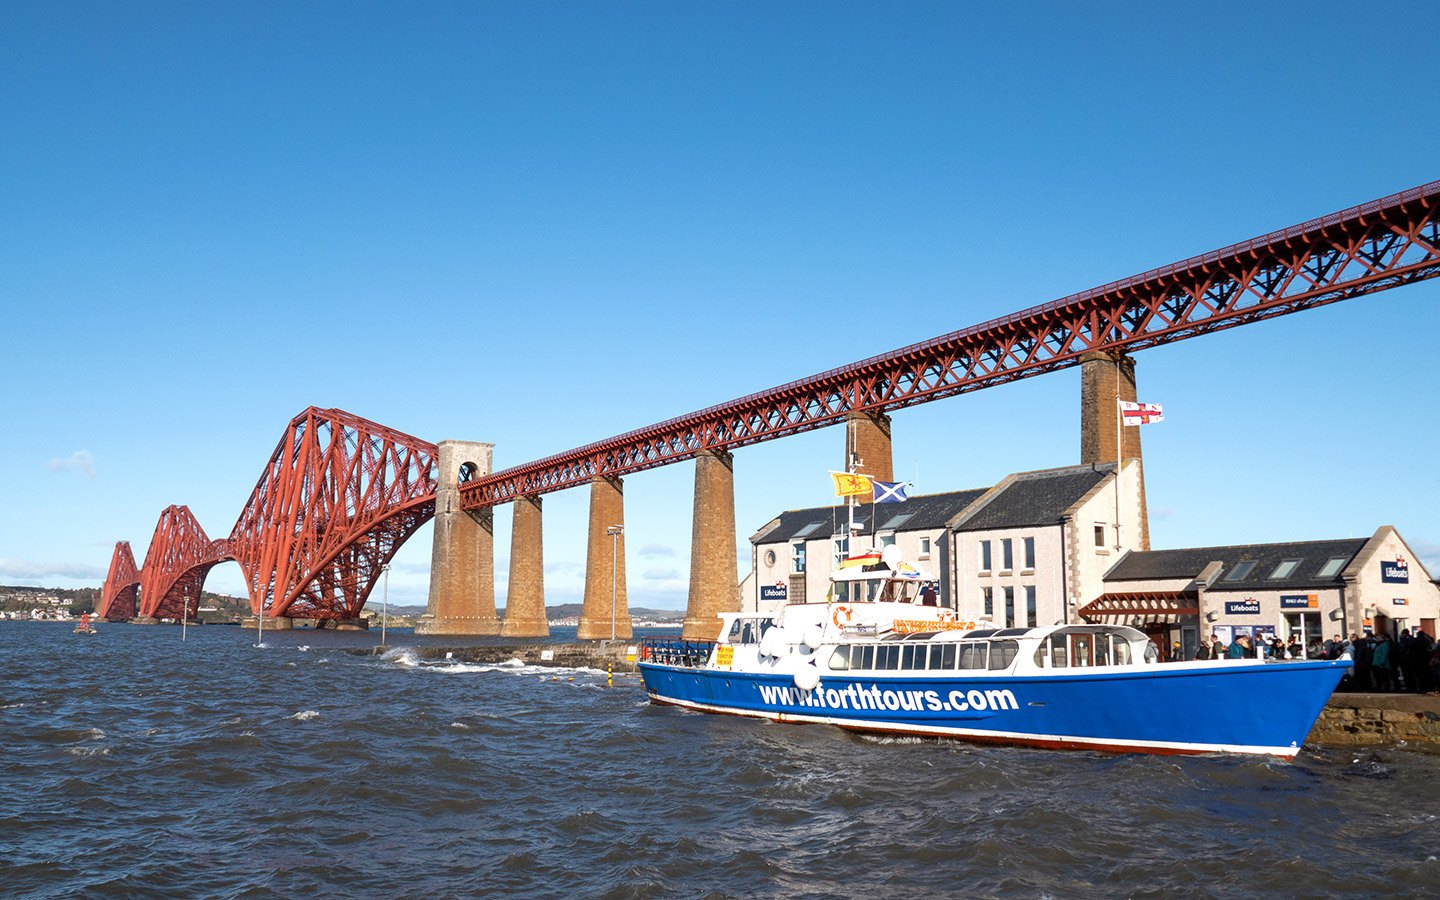 A boat tour on the Firth of Forth in Edinburgh